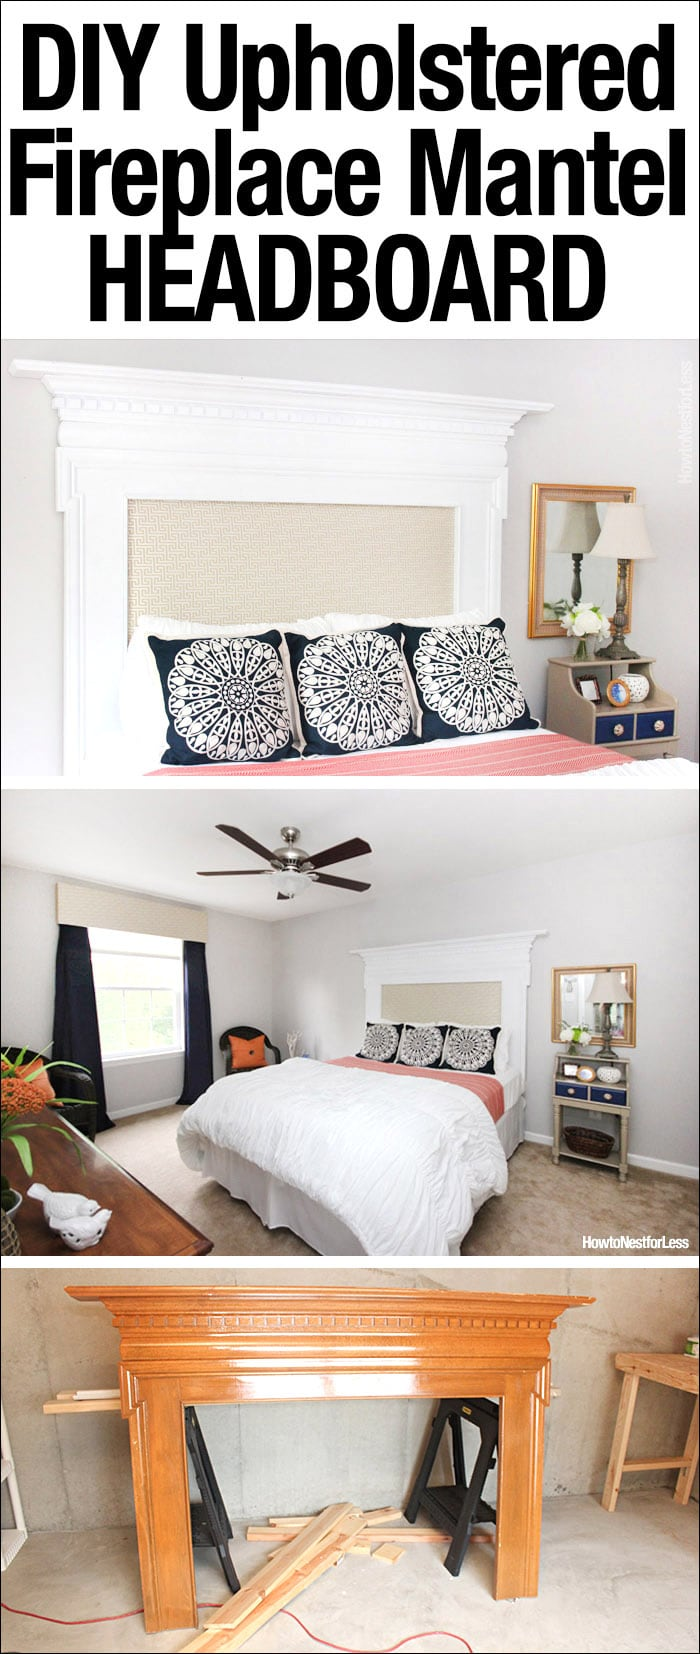 upholstered fireplace mantel headboard how to nest for less